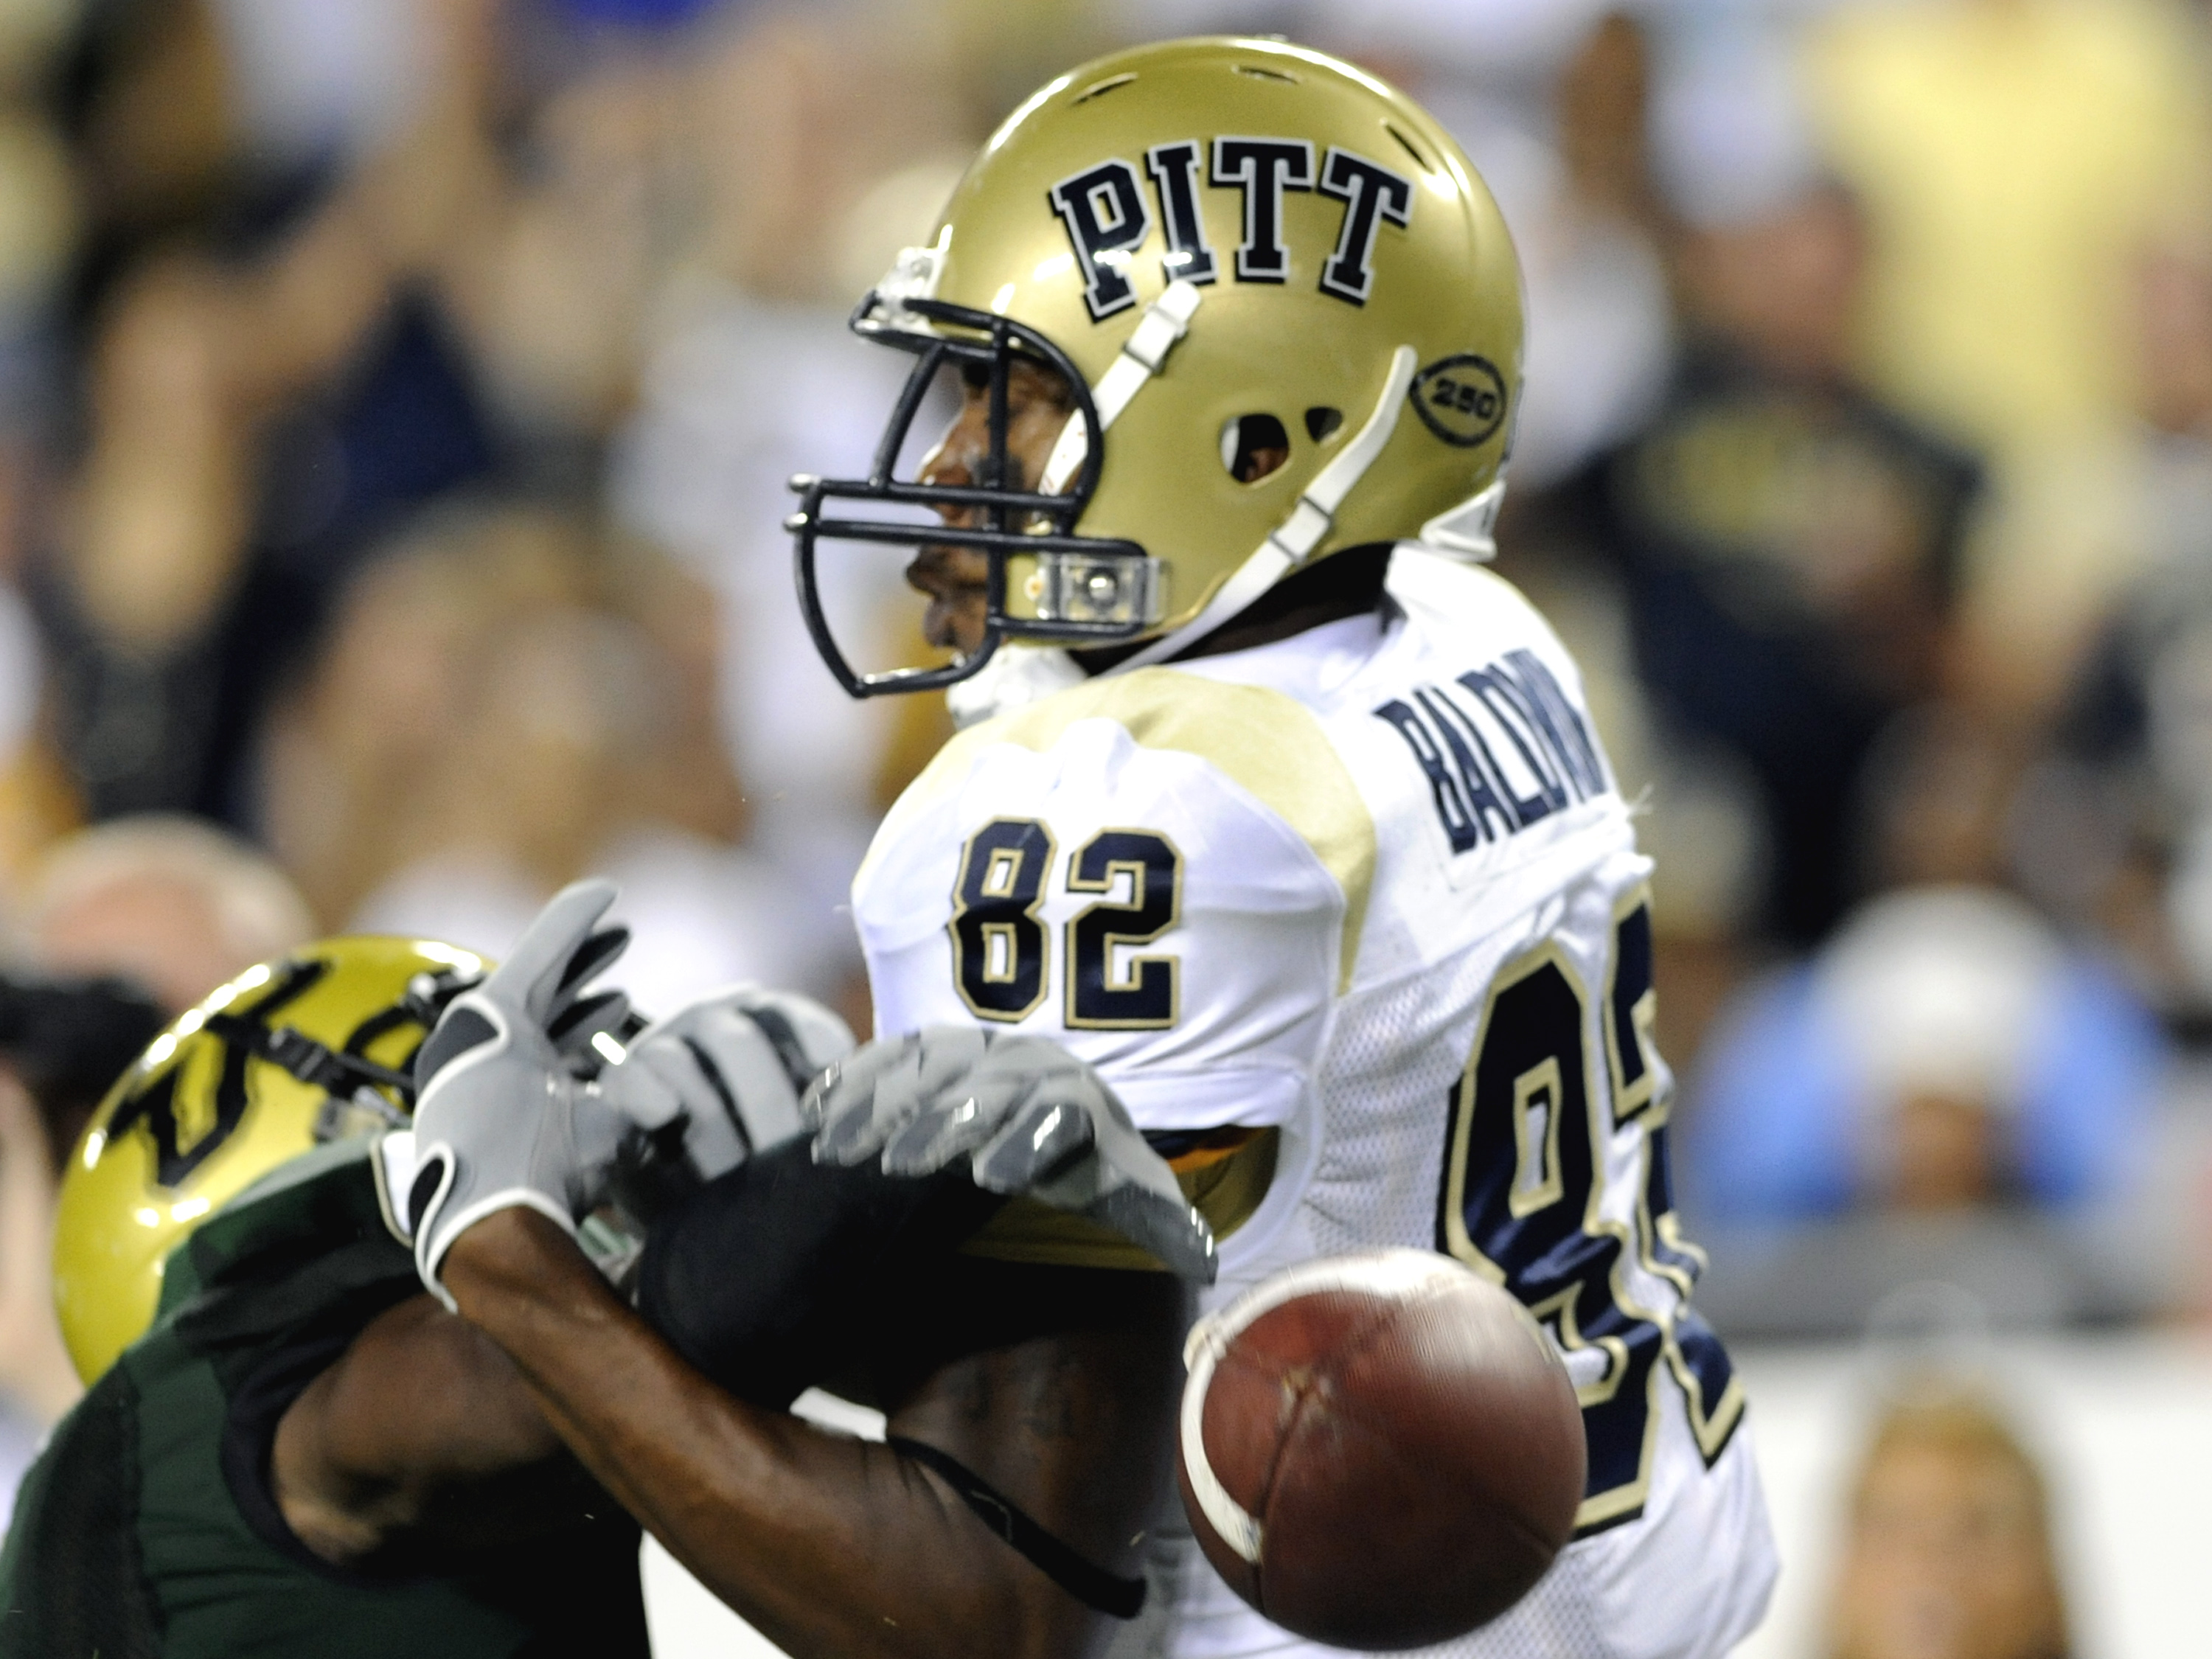 TAMPA, FL - OCTOBER 2:  Wide receiver Jonathan Baldwin #82 of the Pittsburgh Panthers draws a pass interference penalty in the end zone against the University of South Florida Bulls at Raymond James Stadium on October 2, 2008 in Tampa, Florida.  (Photo by